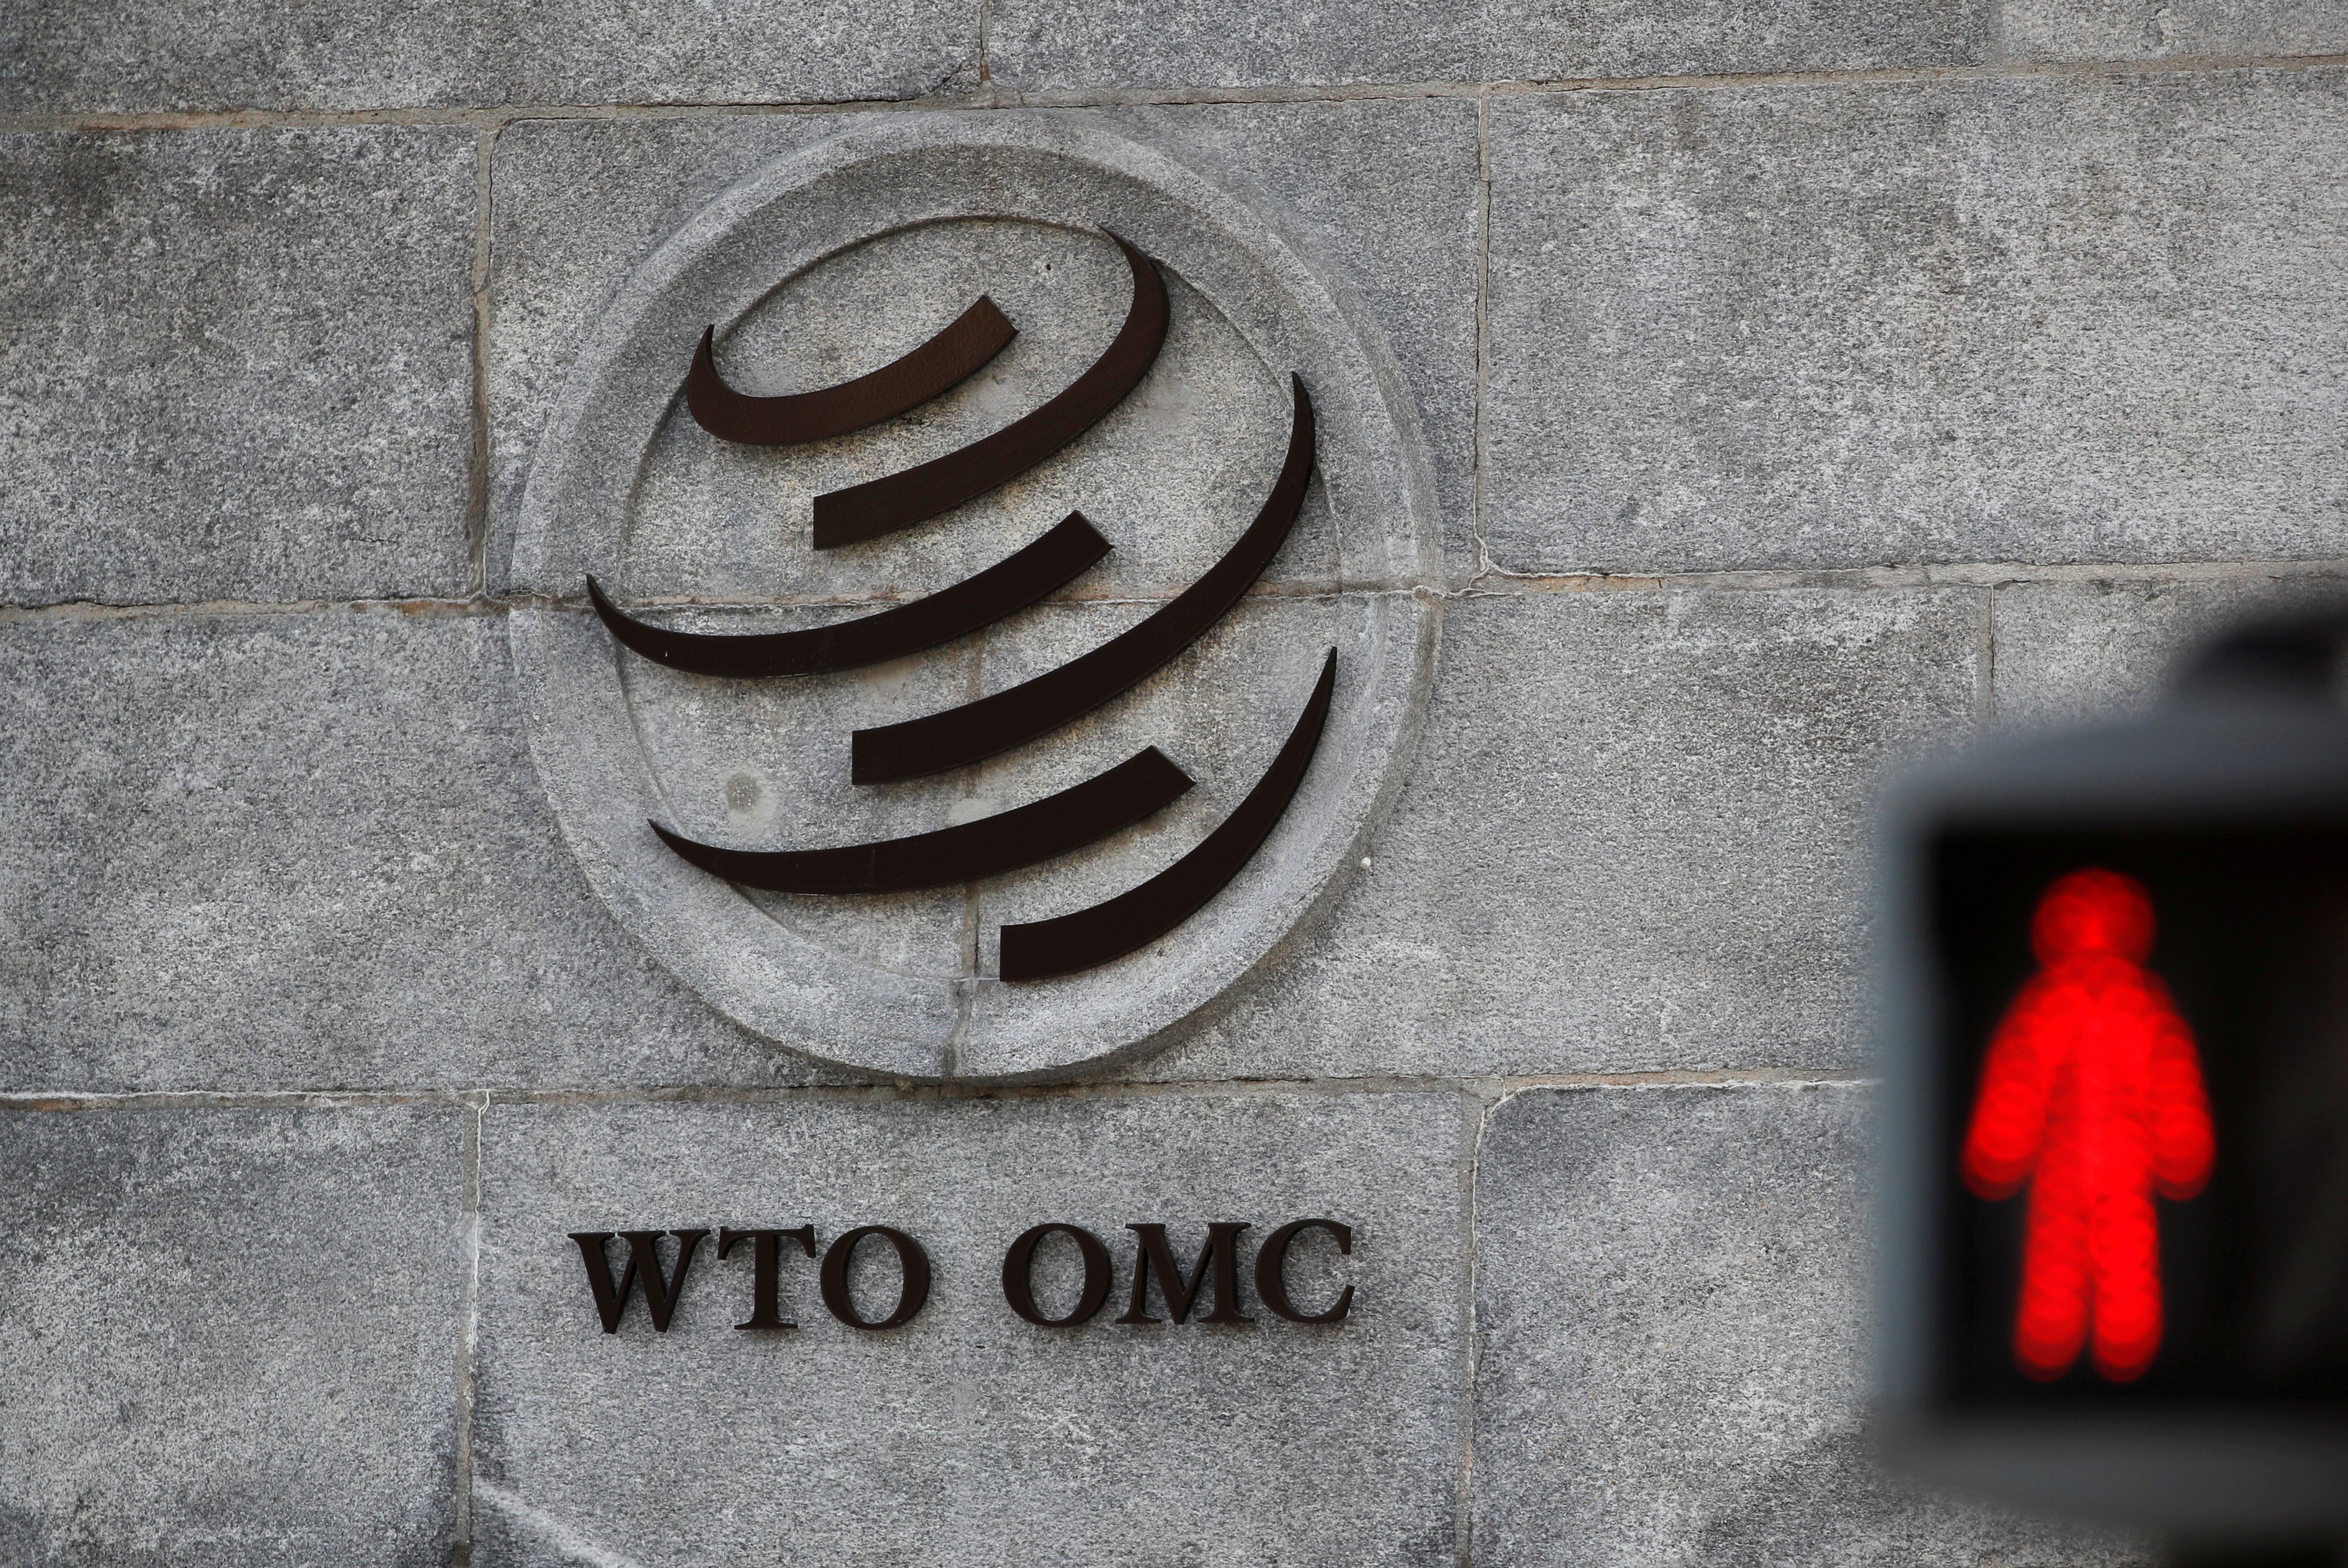 WTO chief sees no end in sight to U.S. blockage